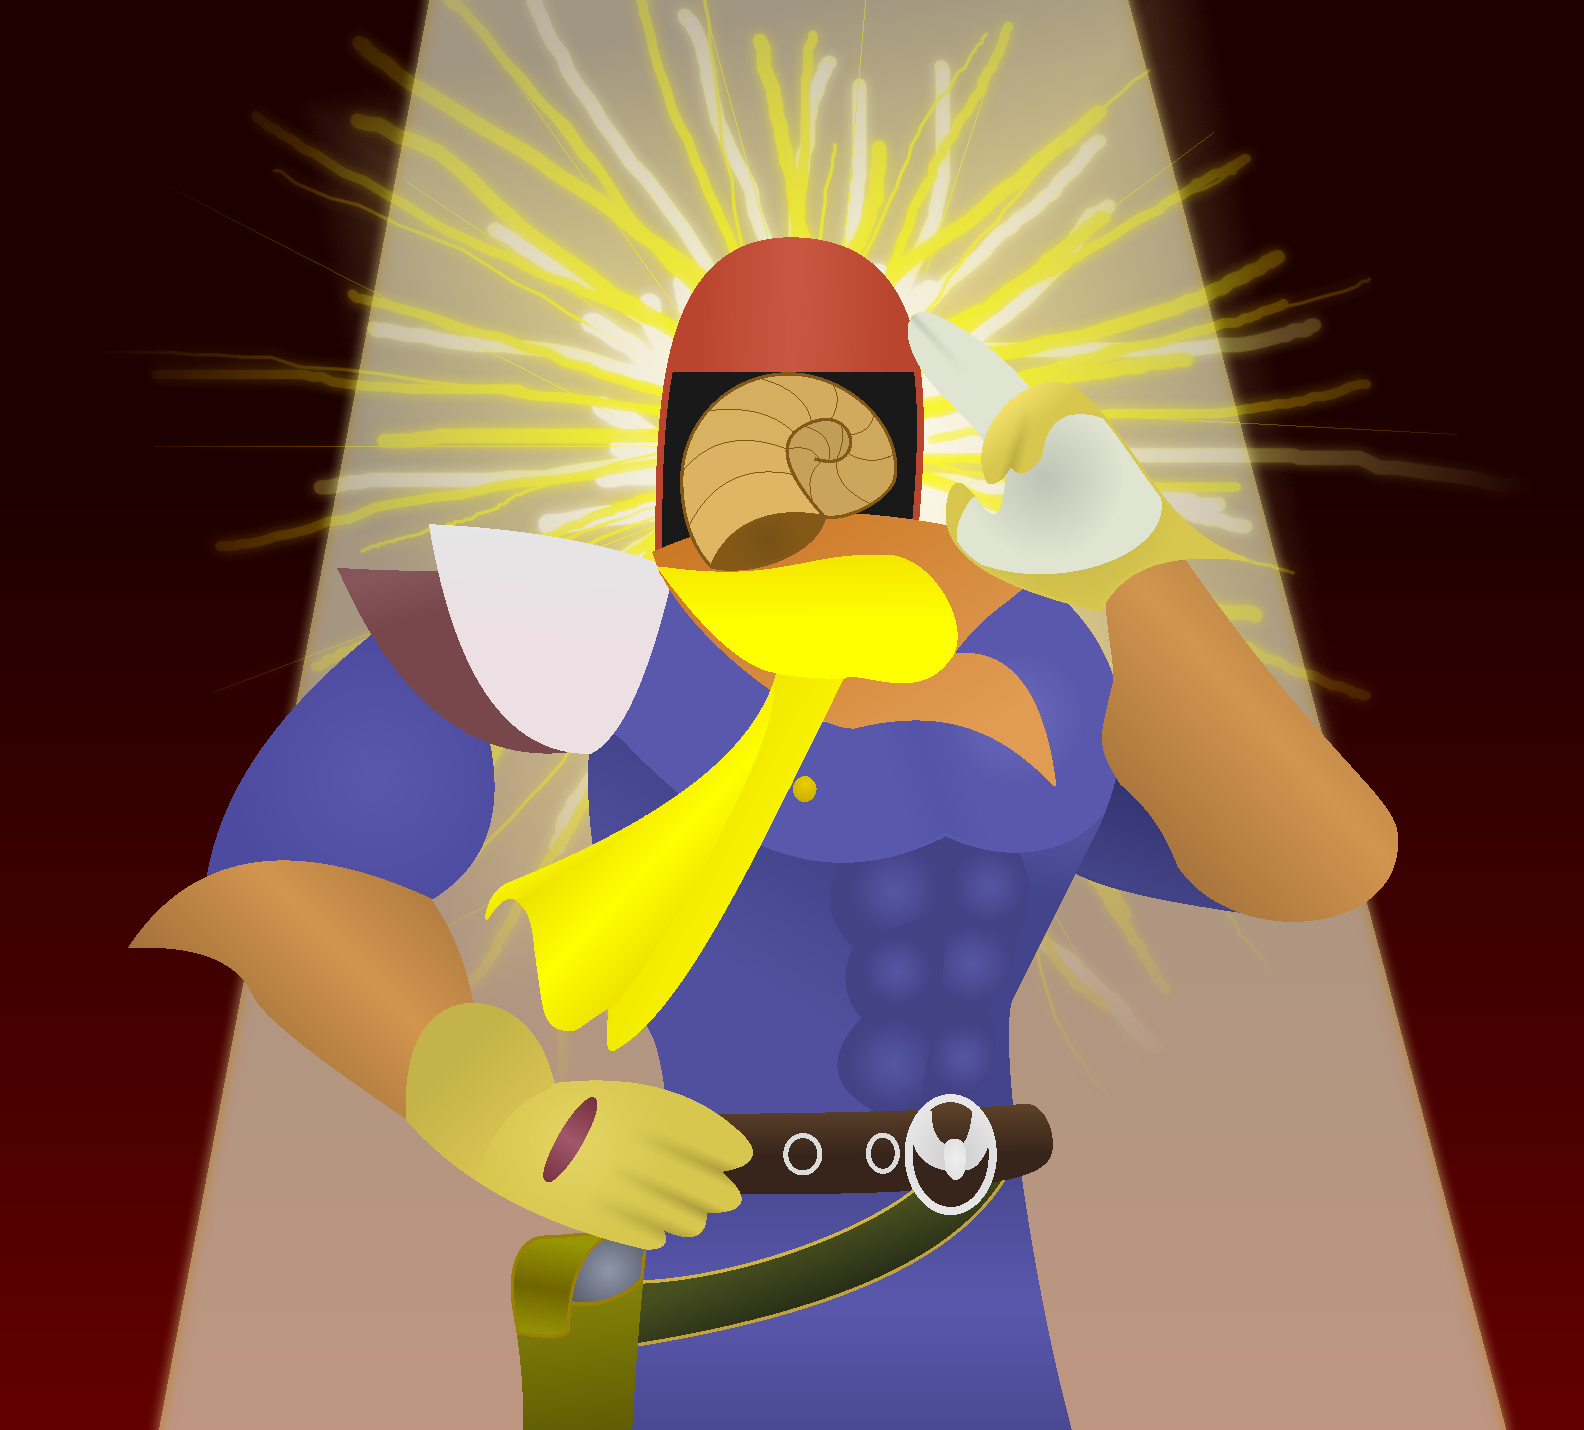 ''Bird Jesus'' by Pfaccioxx